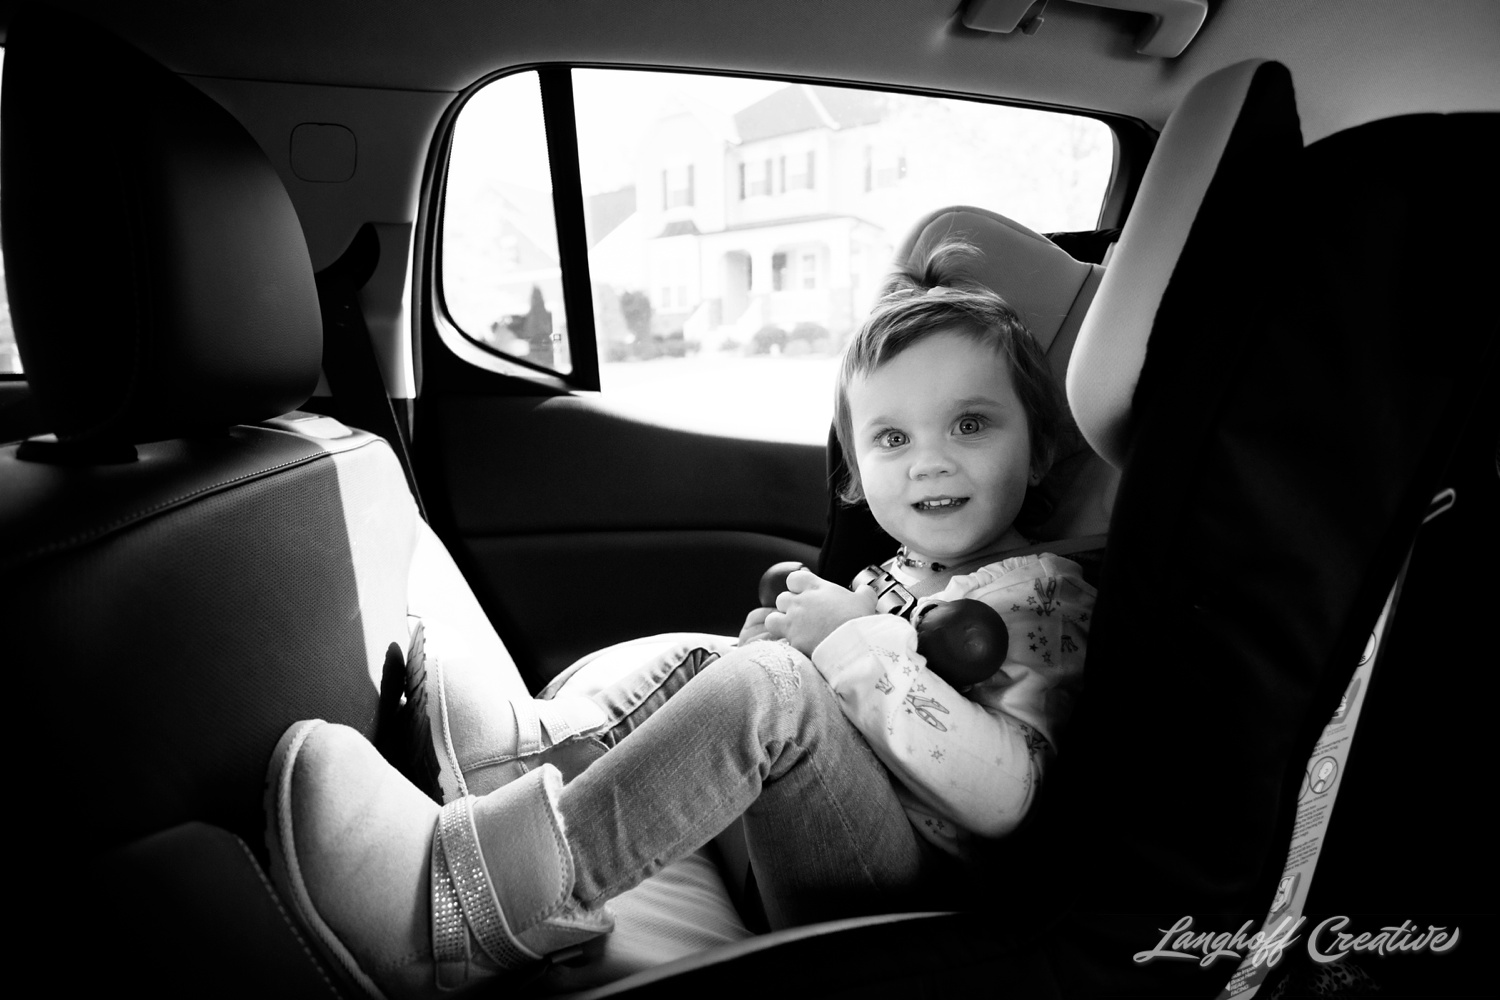 20171125-McGrathChristmas-DayInTheLife-Holidays-LanghoffCreative-RealLifeSession-DocumentaryFamilyPhotography-RDUphotographer-5-photo.jpg